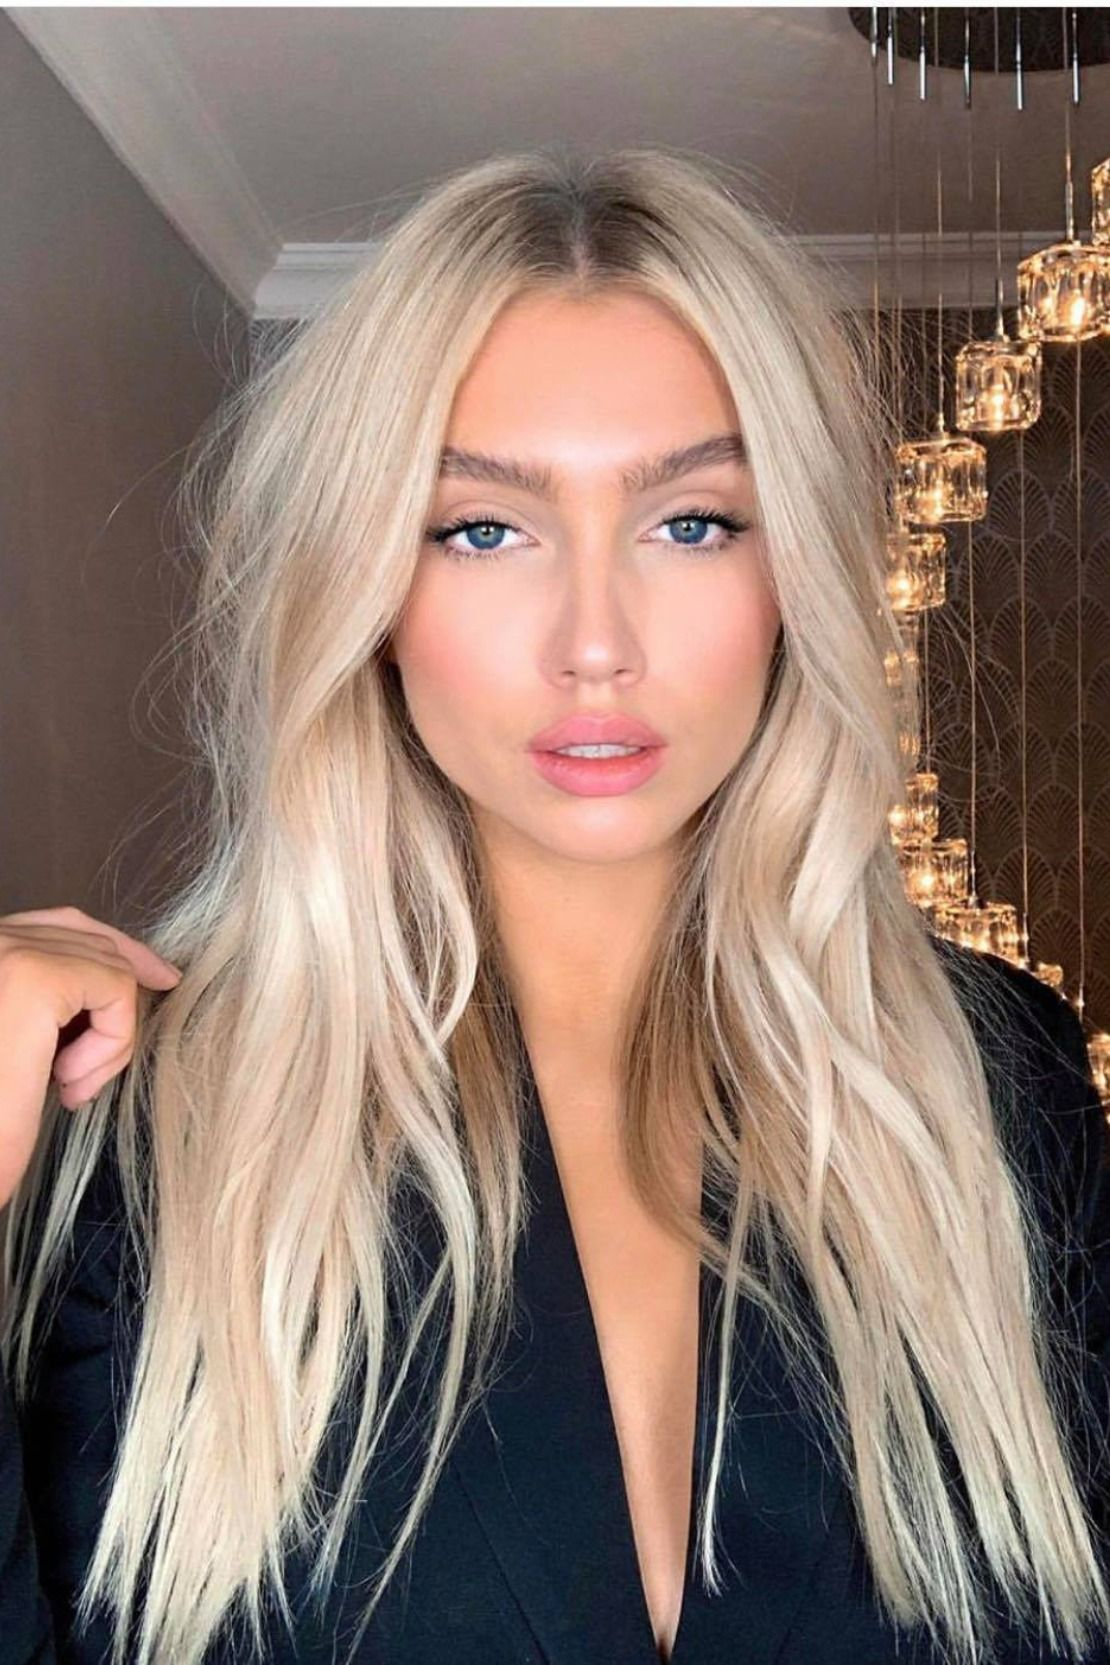 Do You Have Your Hair Dyed Blonde That Is What You Should Never Do Dyed Blonde Hair Hair Styles Blonde Hair Inspiration